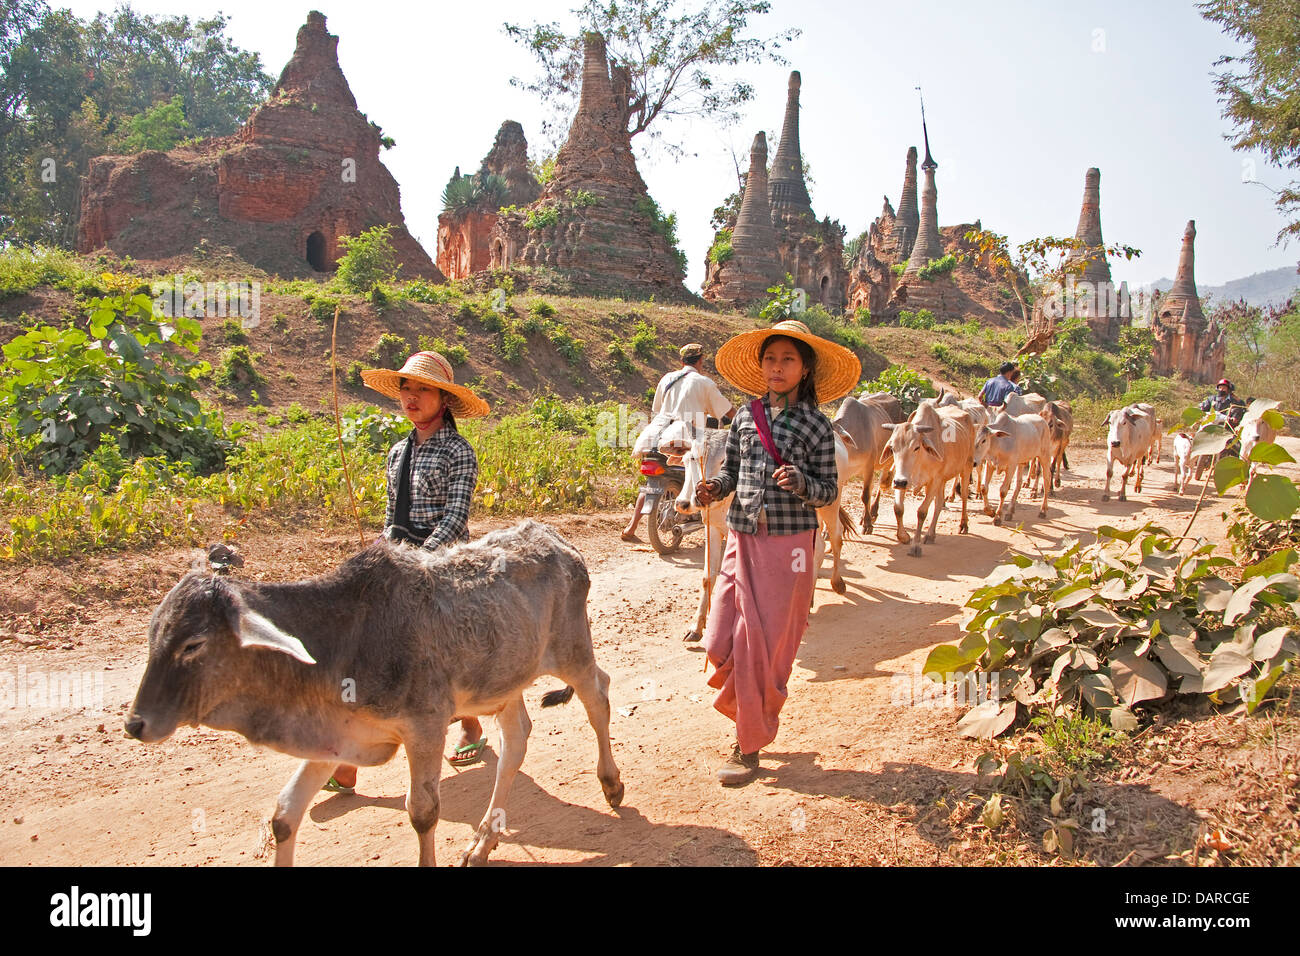 Village girls herding cattle past ancient stupas in ruins near Indein village on Inle Lake, Shan state. - Stock Image